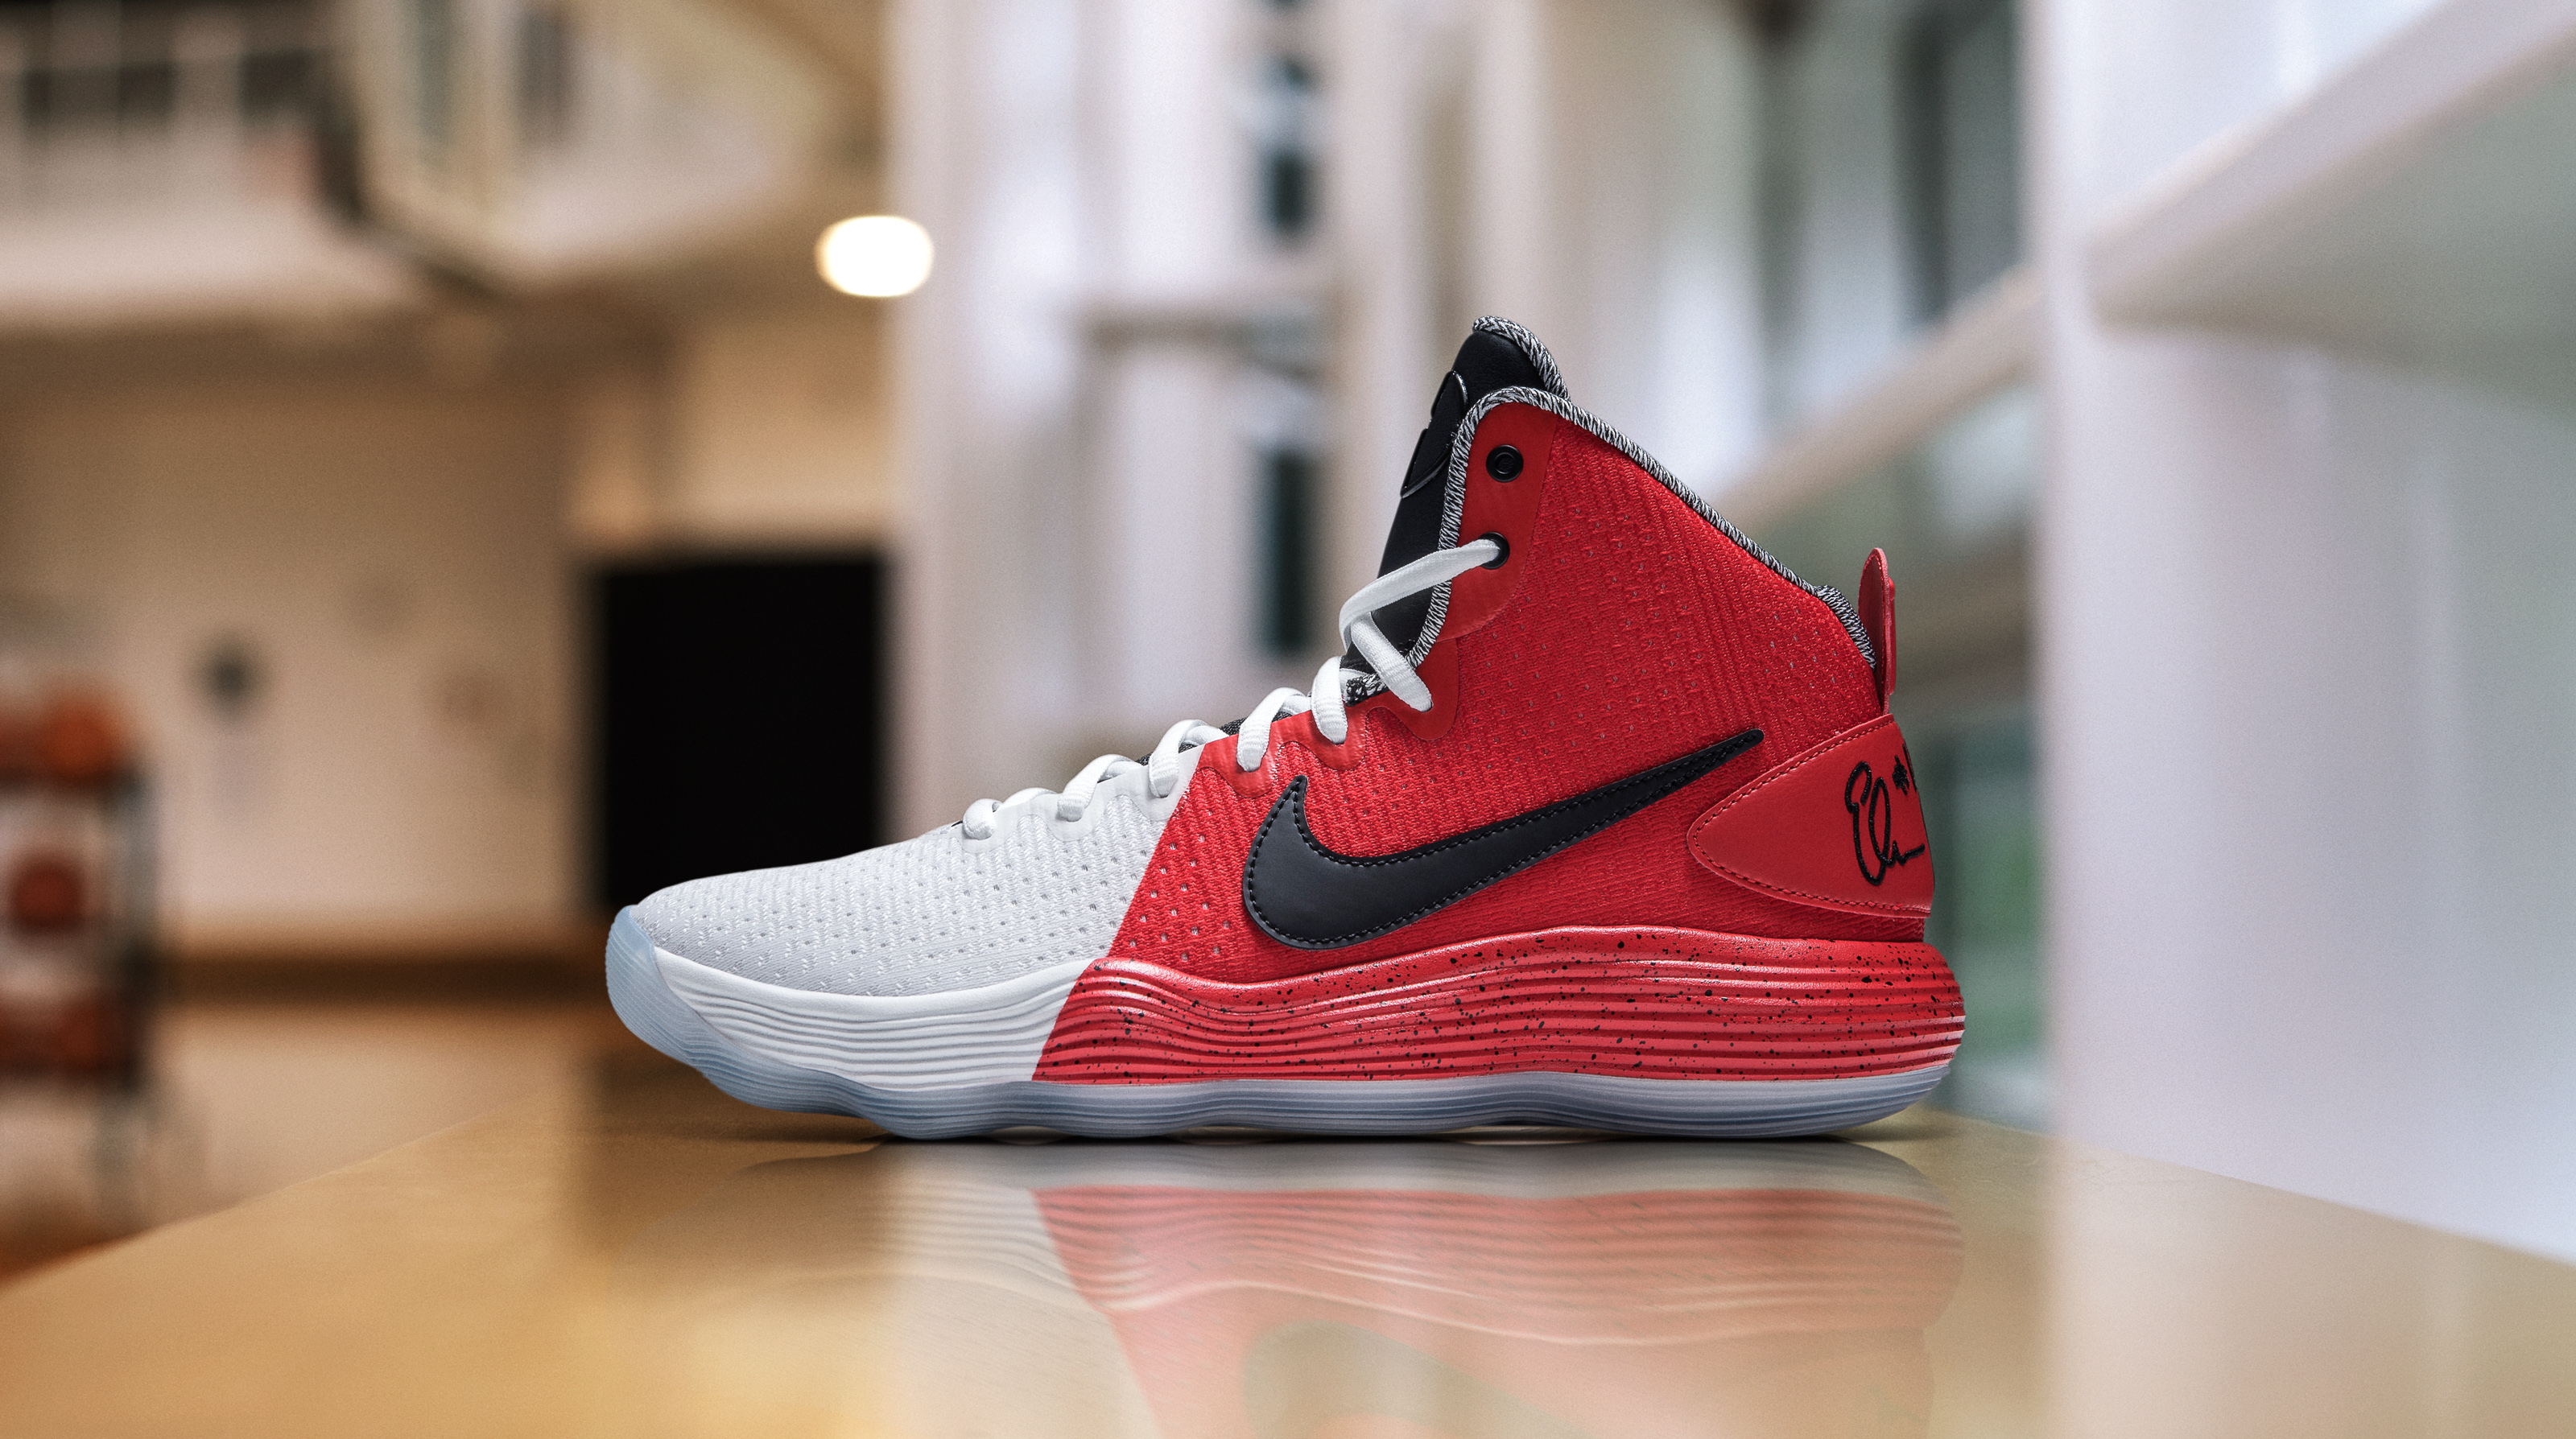 Elena Delle Donne honors Sheryl Swoopes with a player exclusive Nike React Hyperdunk 2017